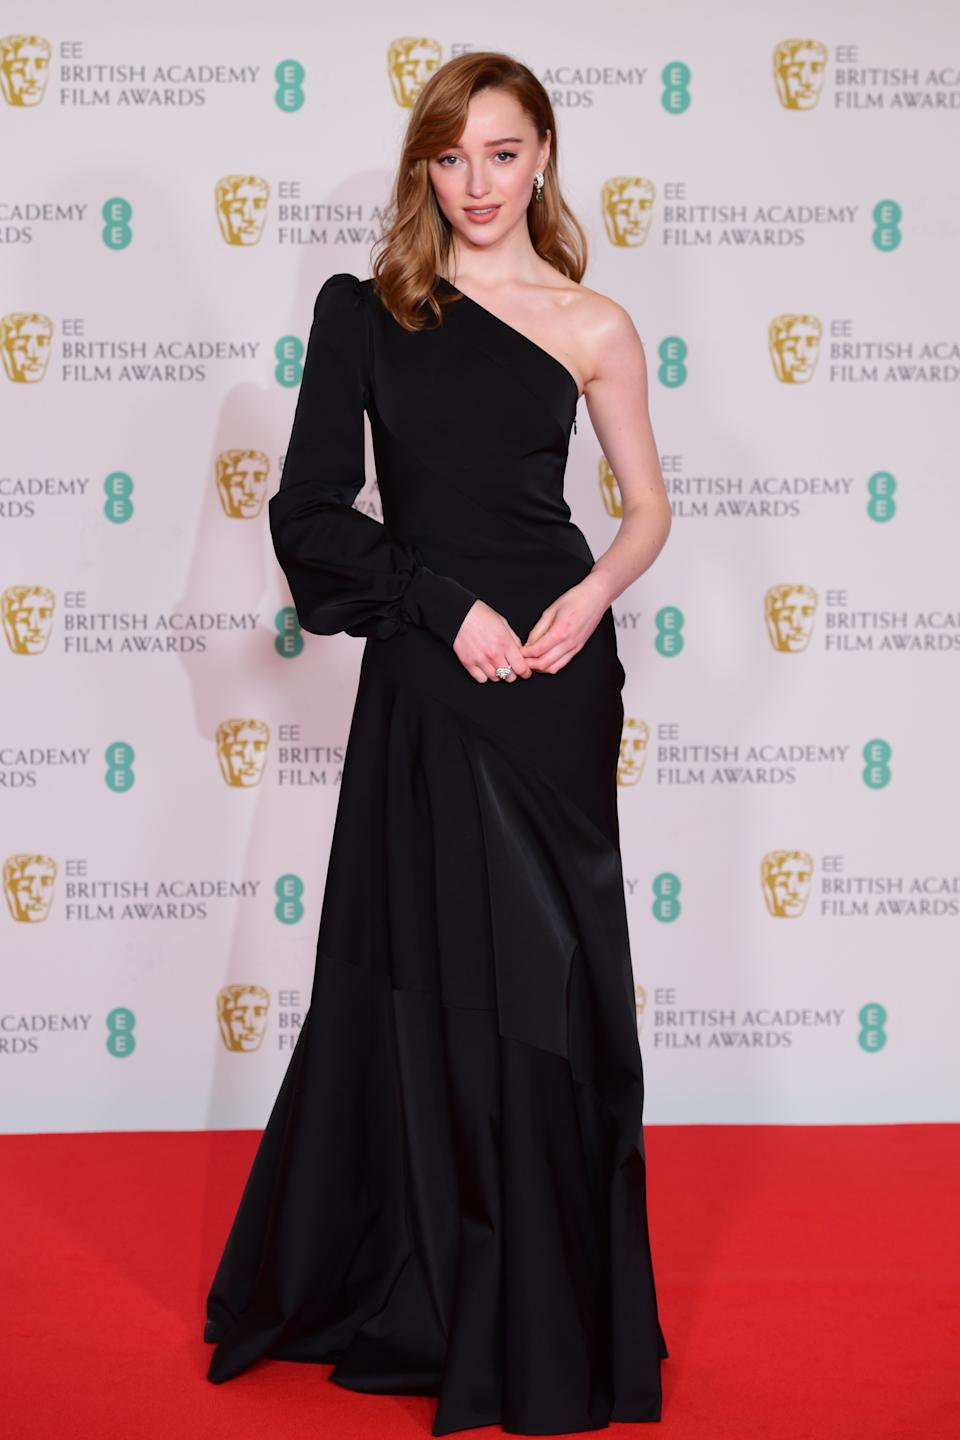 Phoebe Dynevor arrives for the EE BAFTA Film Awards at the Royal Albert Hall in London. Picture date: Sunday April 11, 2021. (Photo by Ian West/PA Images via Getty Images)